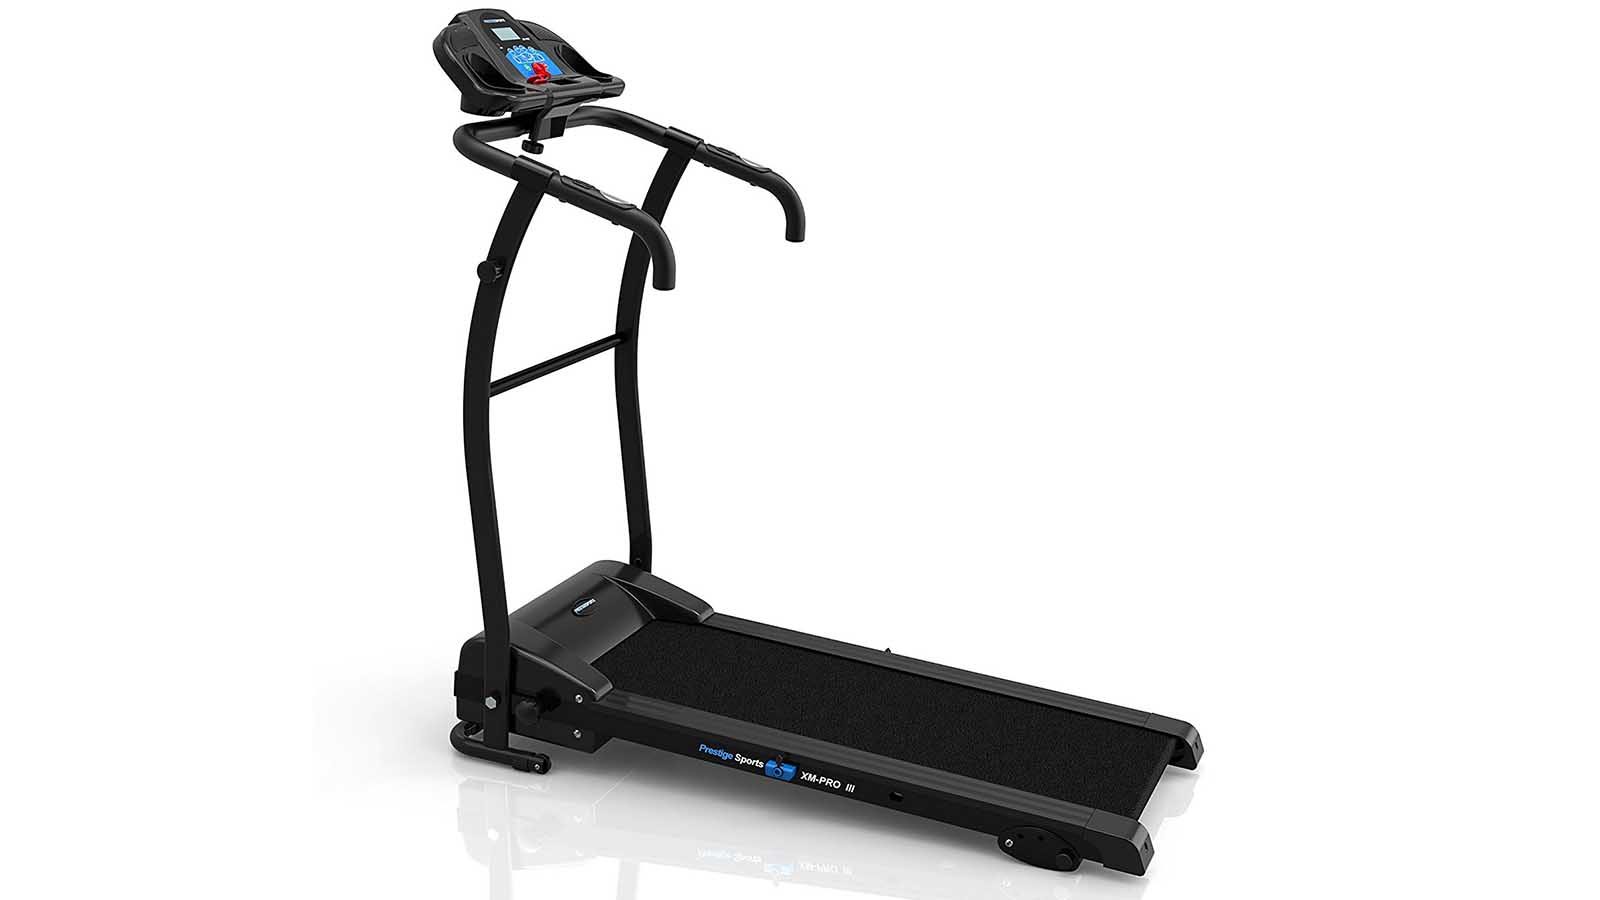 XM-PRO III Treadmill review